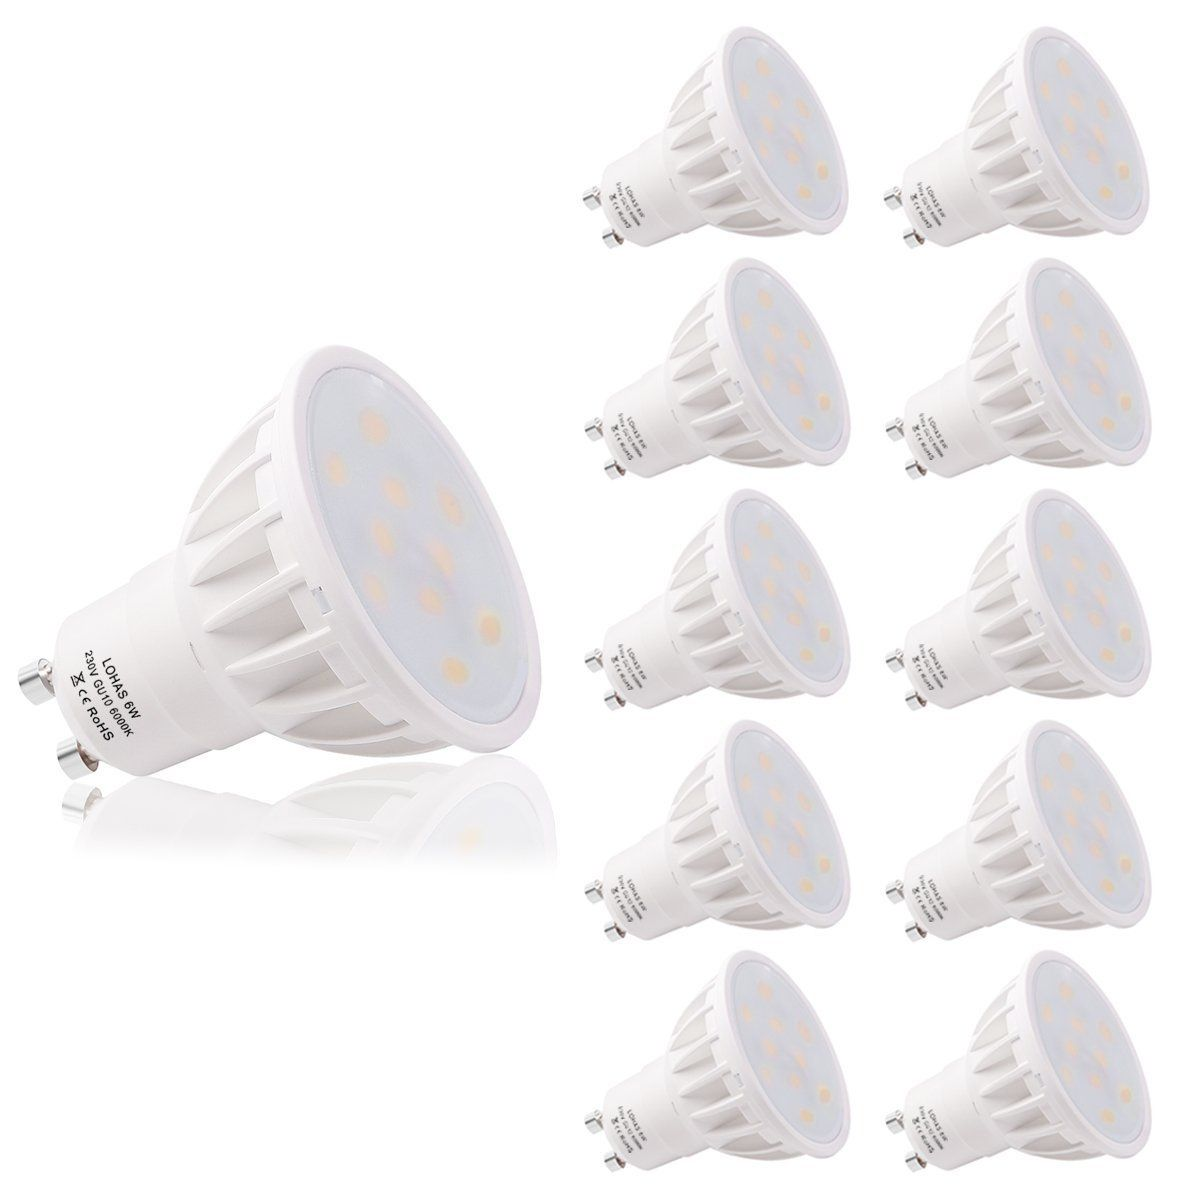 Lohas Gu10 6w Led Beautiful 6000k Day White Colour 50w Replacement For Halogen Bulb With Beautiful Day White Colo Halogen Bulbs Led Light Bulbs Dimmable Led